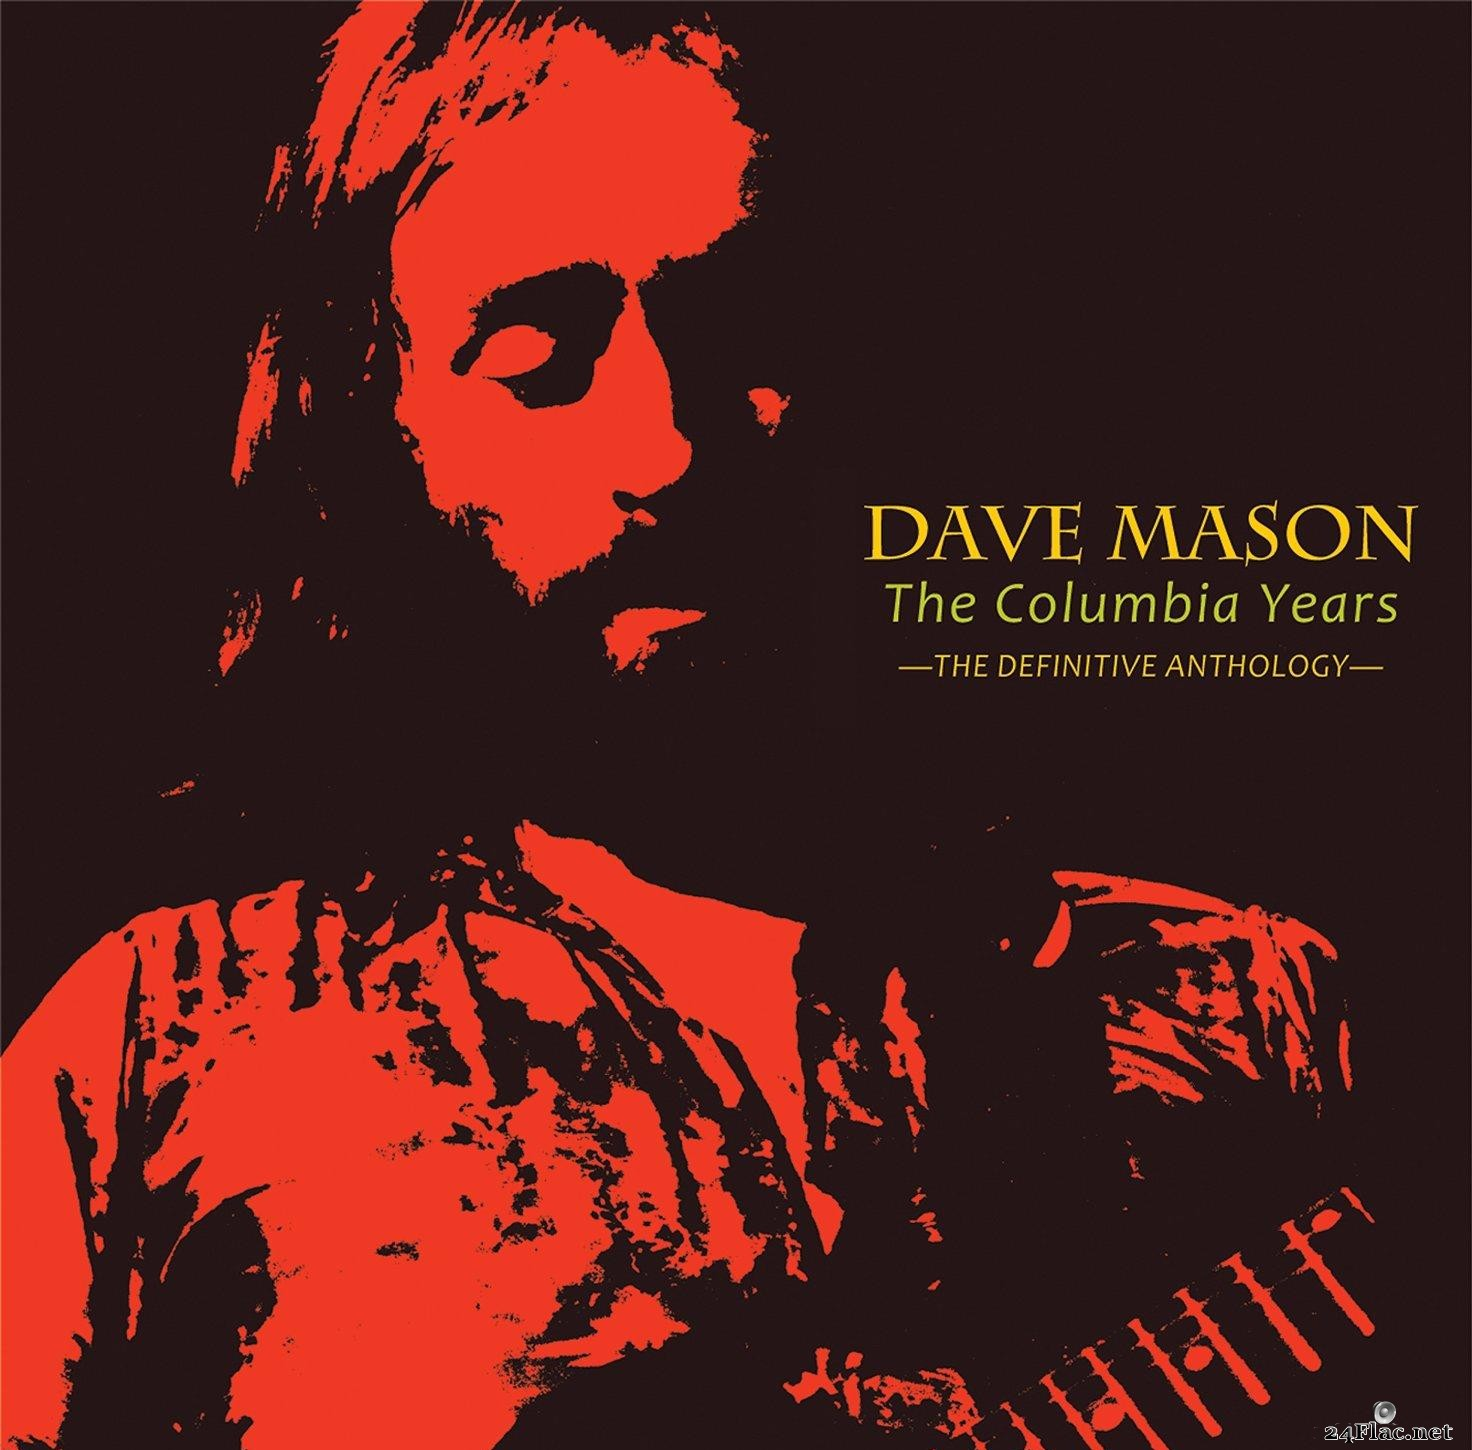 Dave Mason - The Columbia Years - The Definitive Anthology (2014) [FLAC (tracks + .cue)]